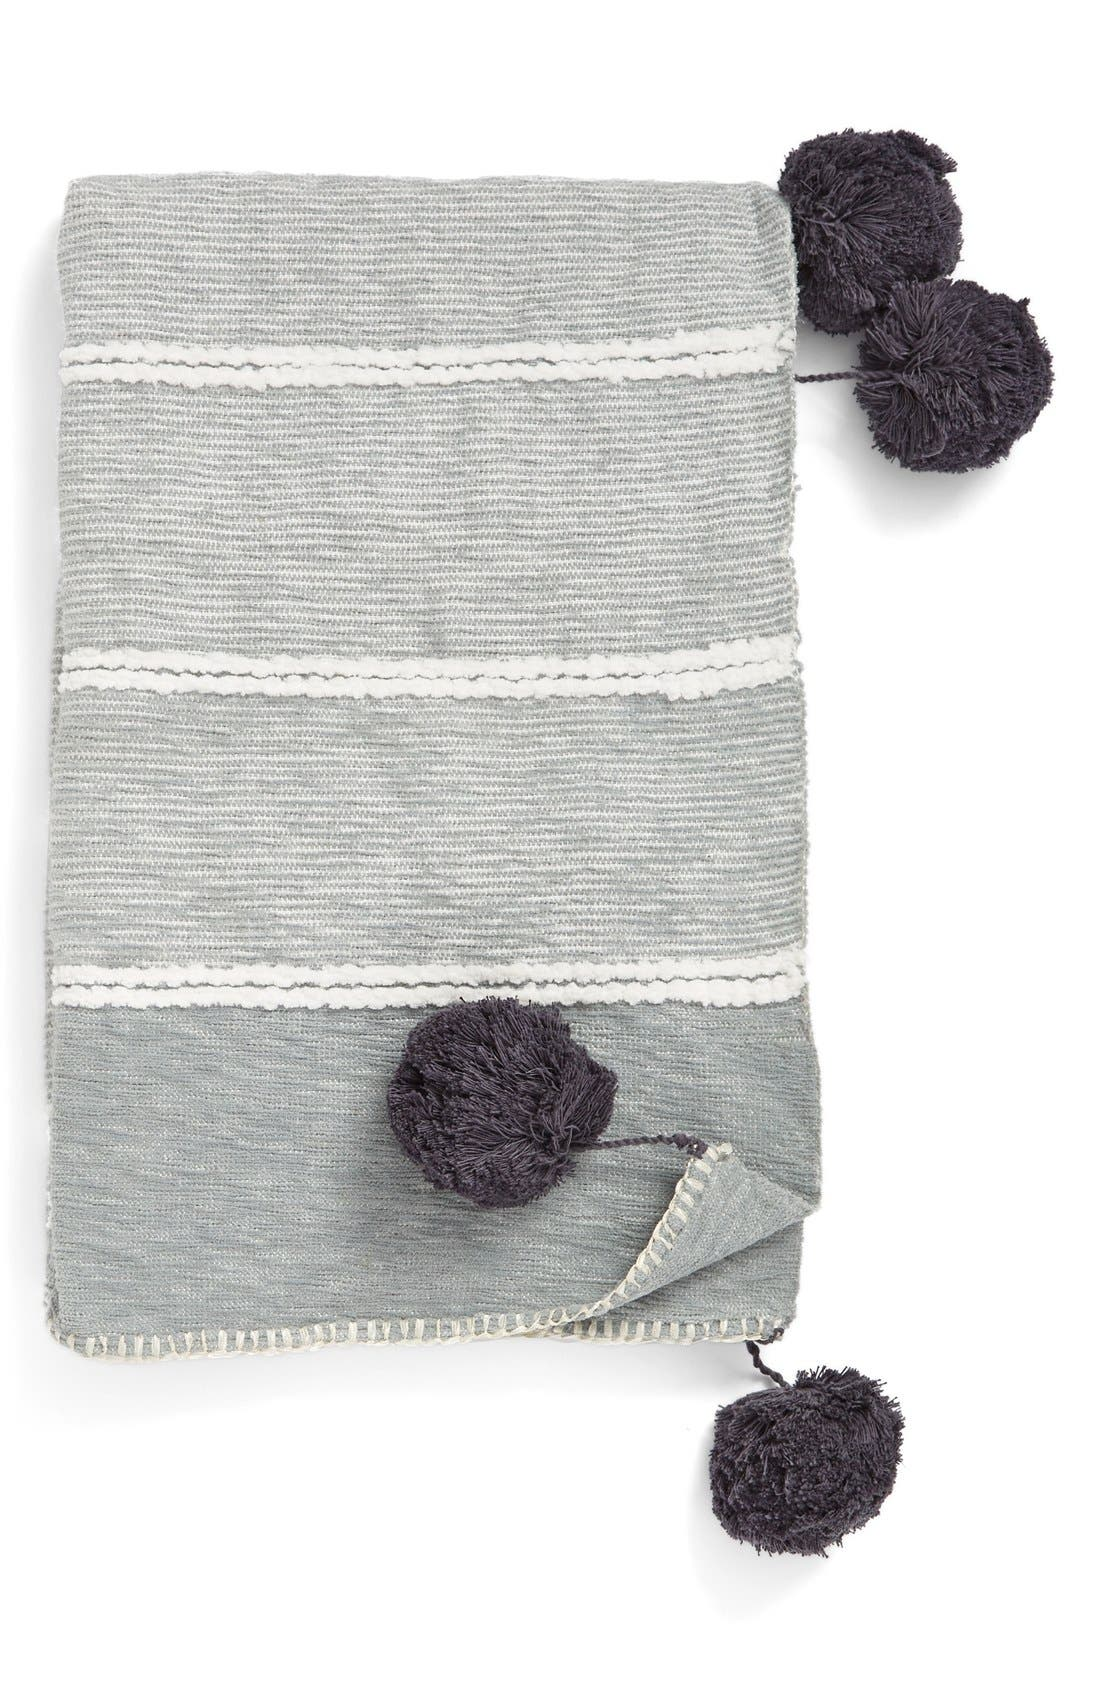 Alternate Image 1 Selected - Nordstrom at Home 'Feather Stripe' Throw Blanket